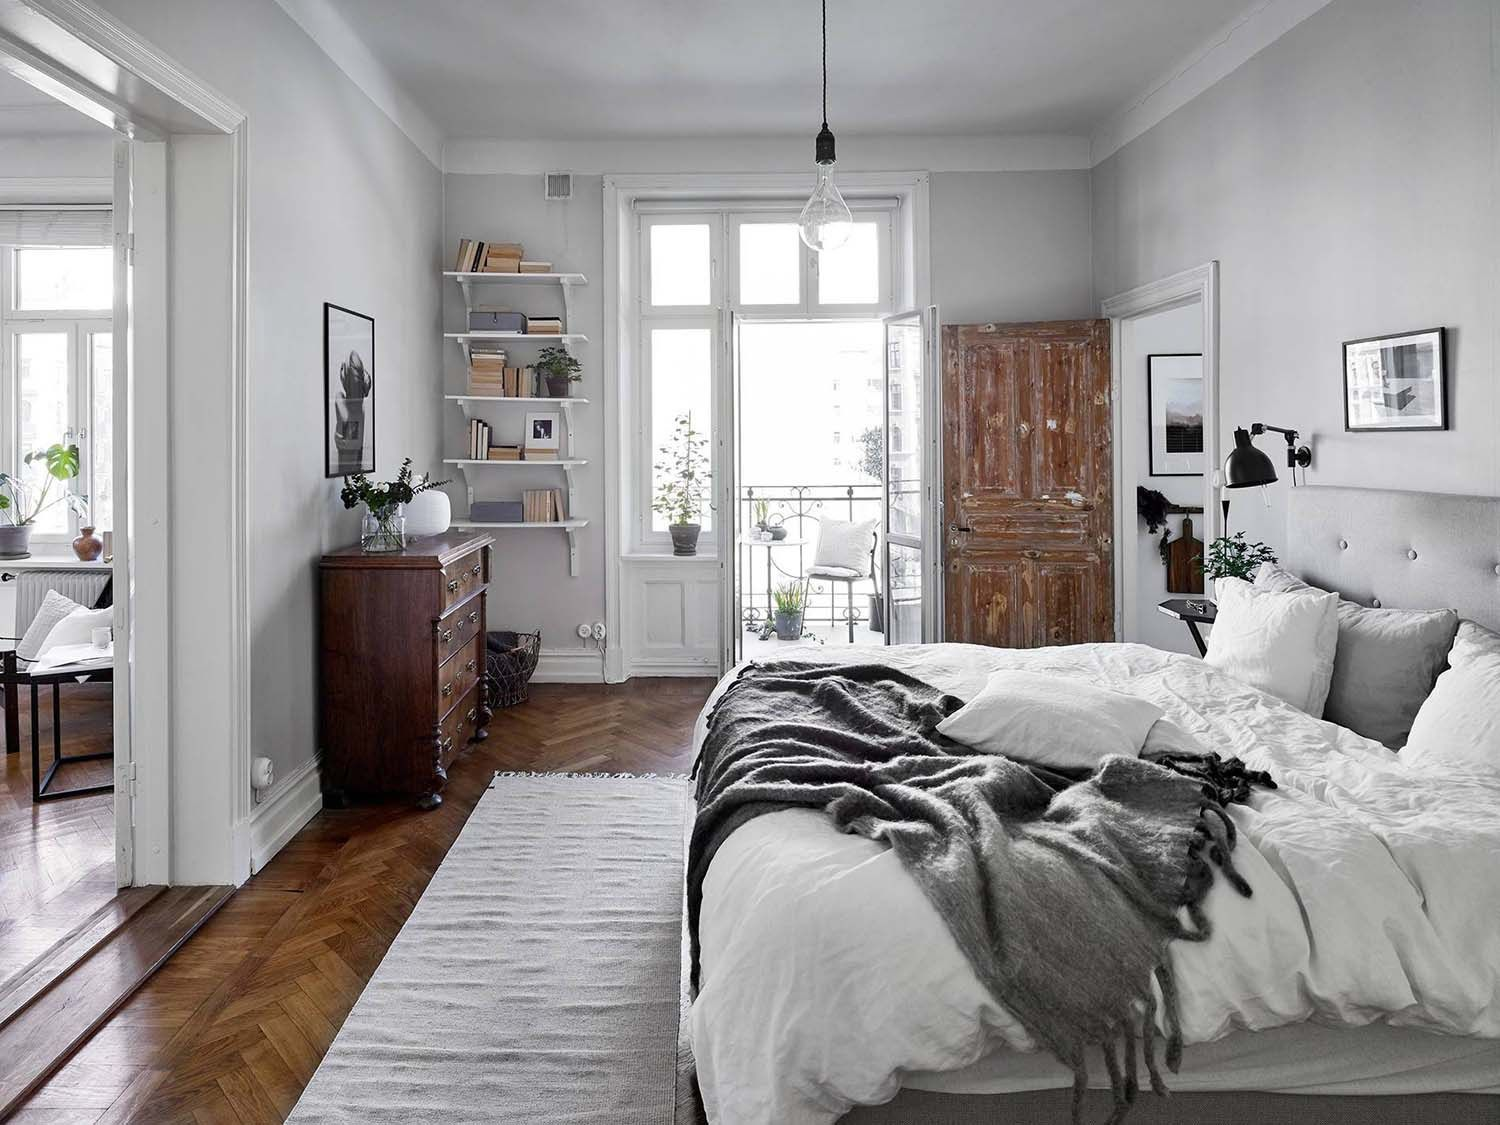 12 Ultra cozy bedroom decorating ideas for winter warmth   Home ...